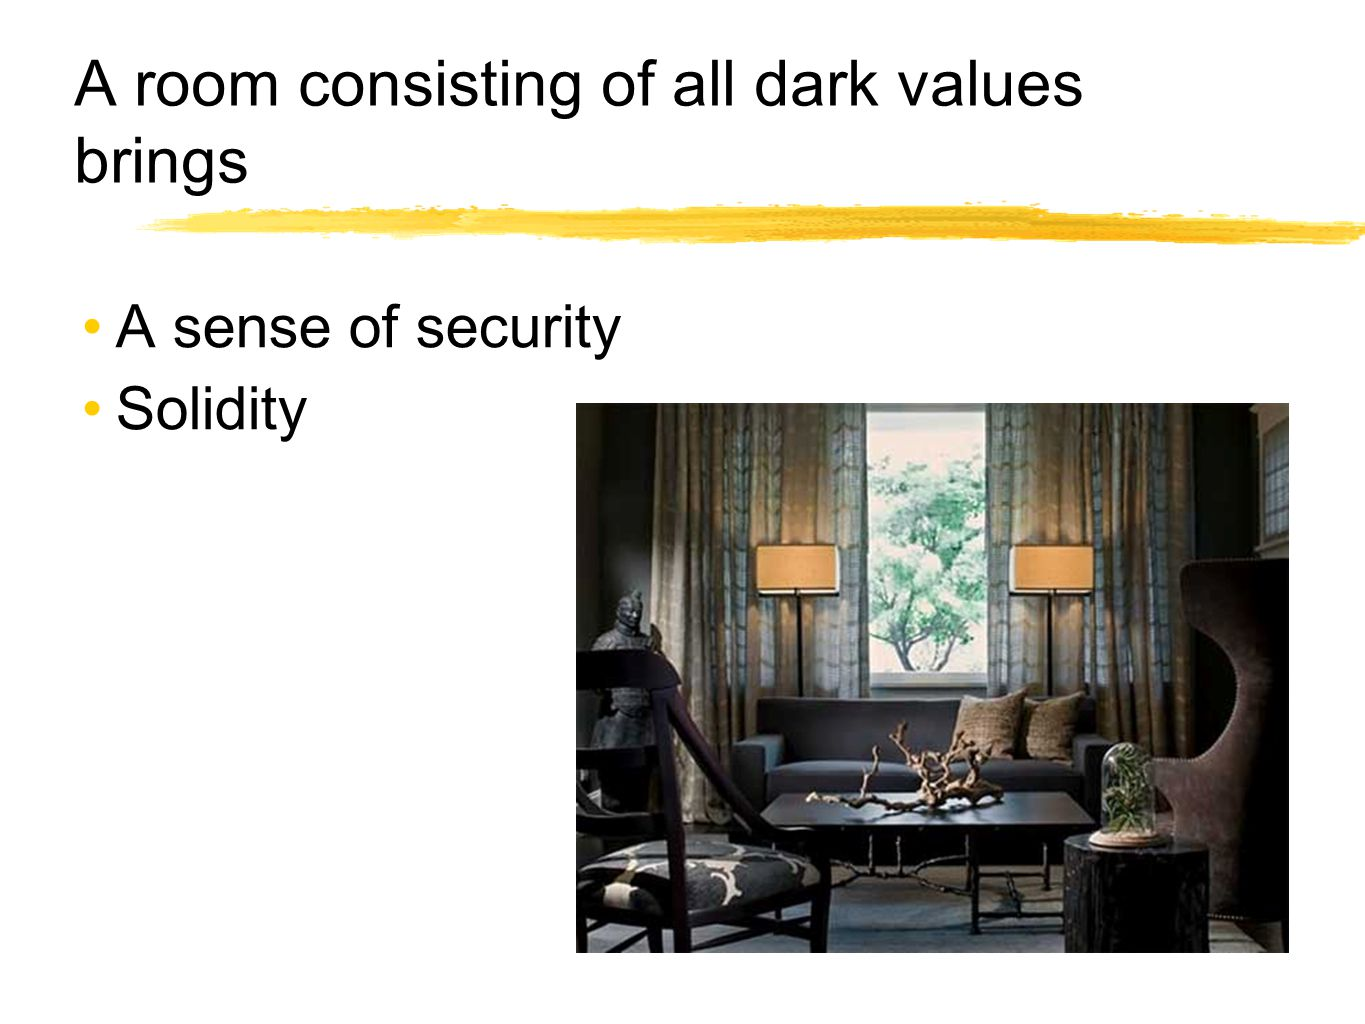 A room consisting of all dark values brings